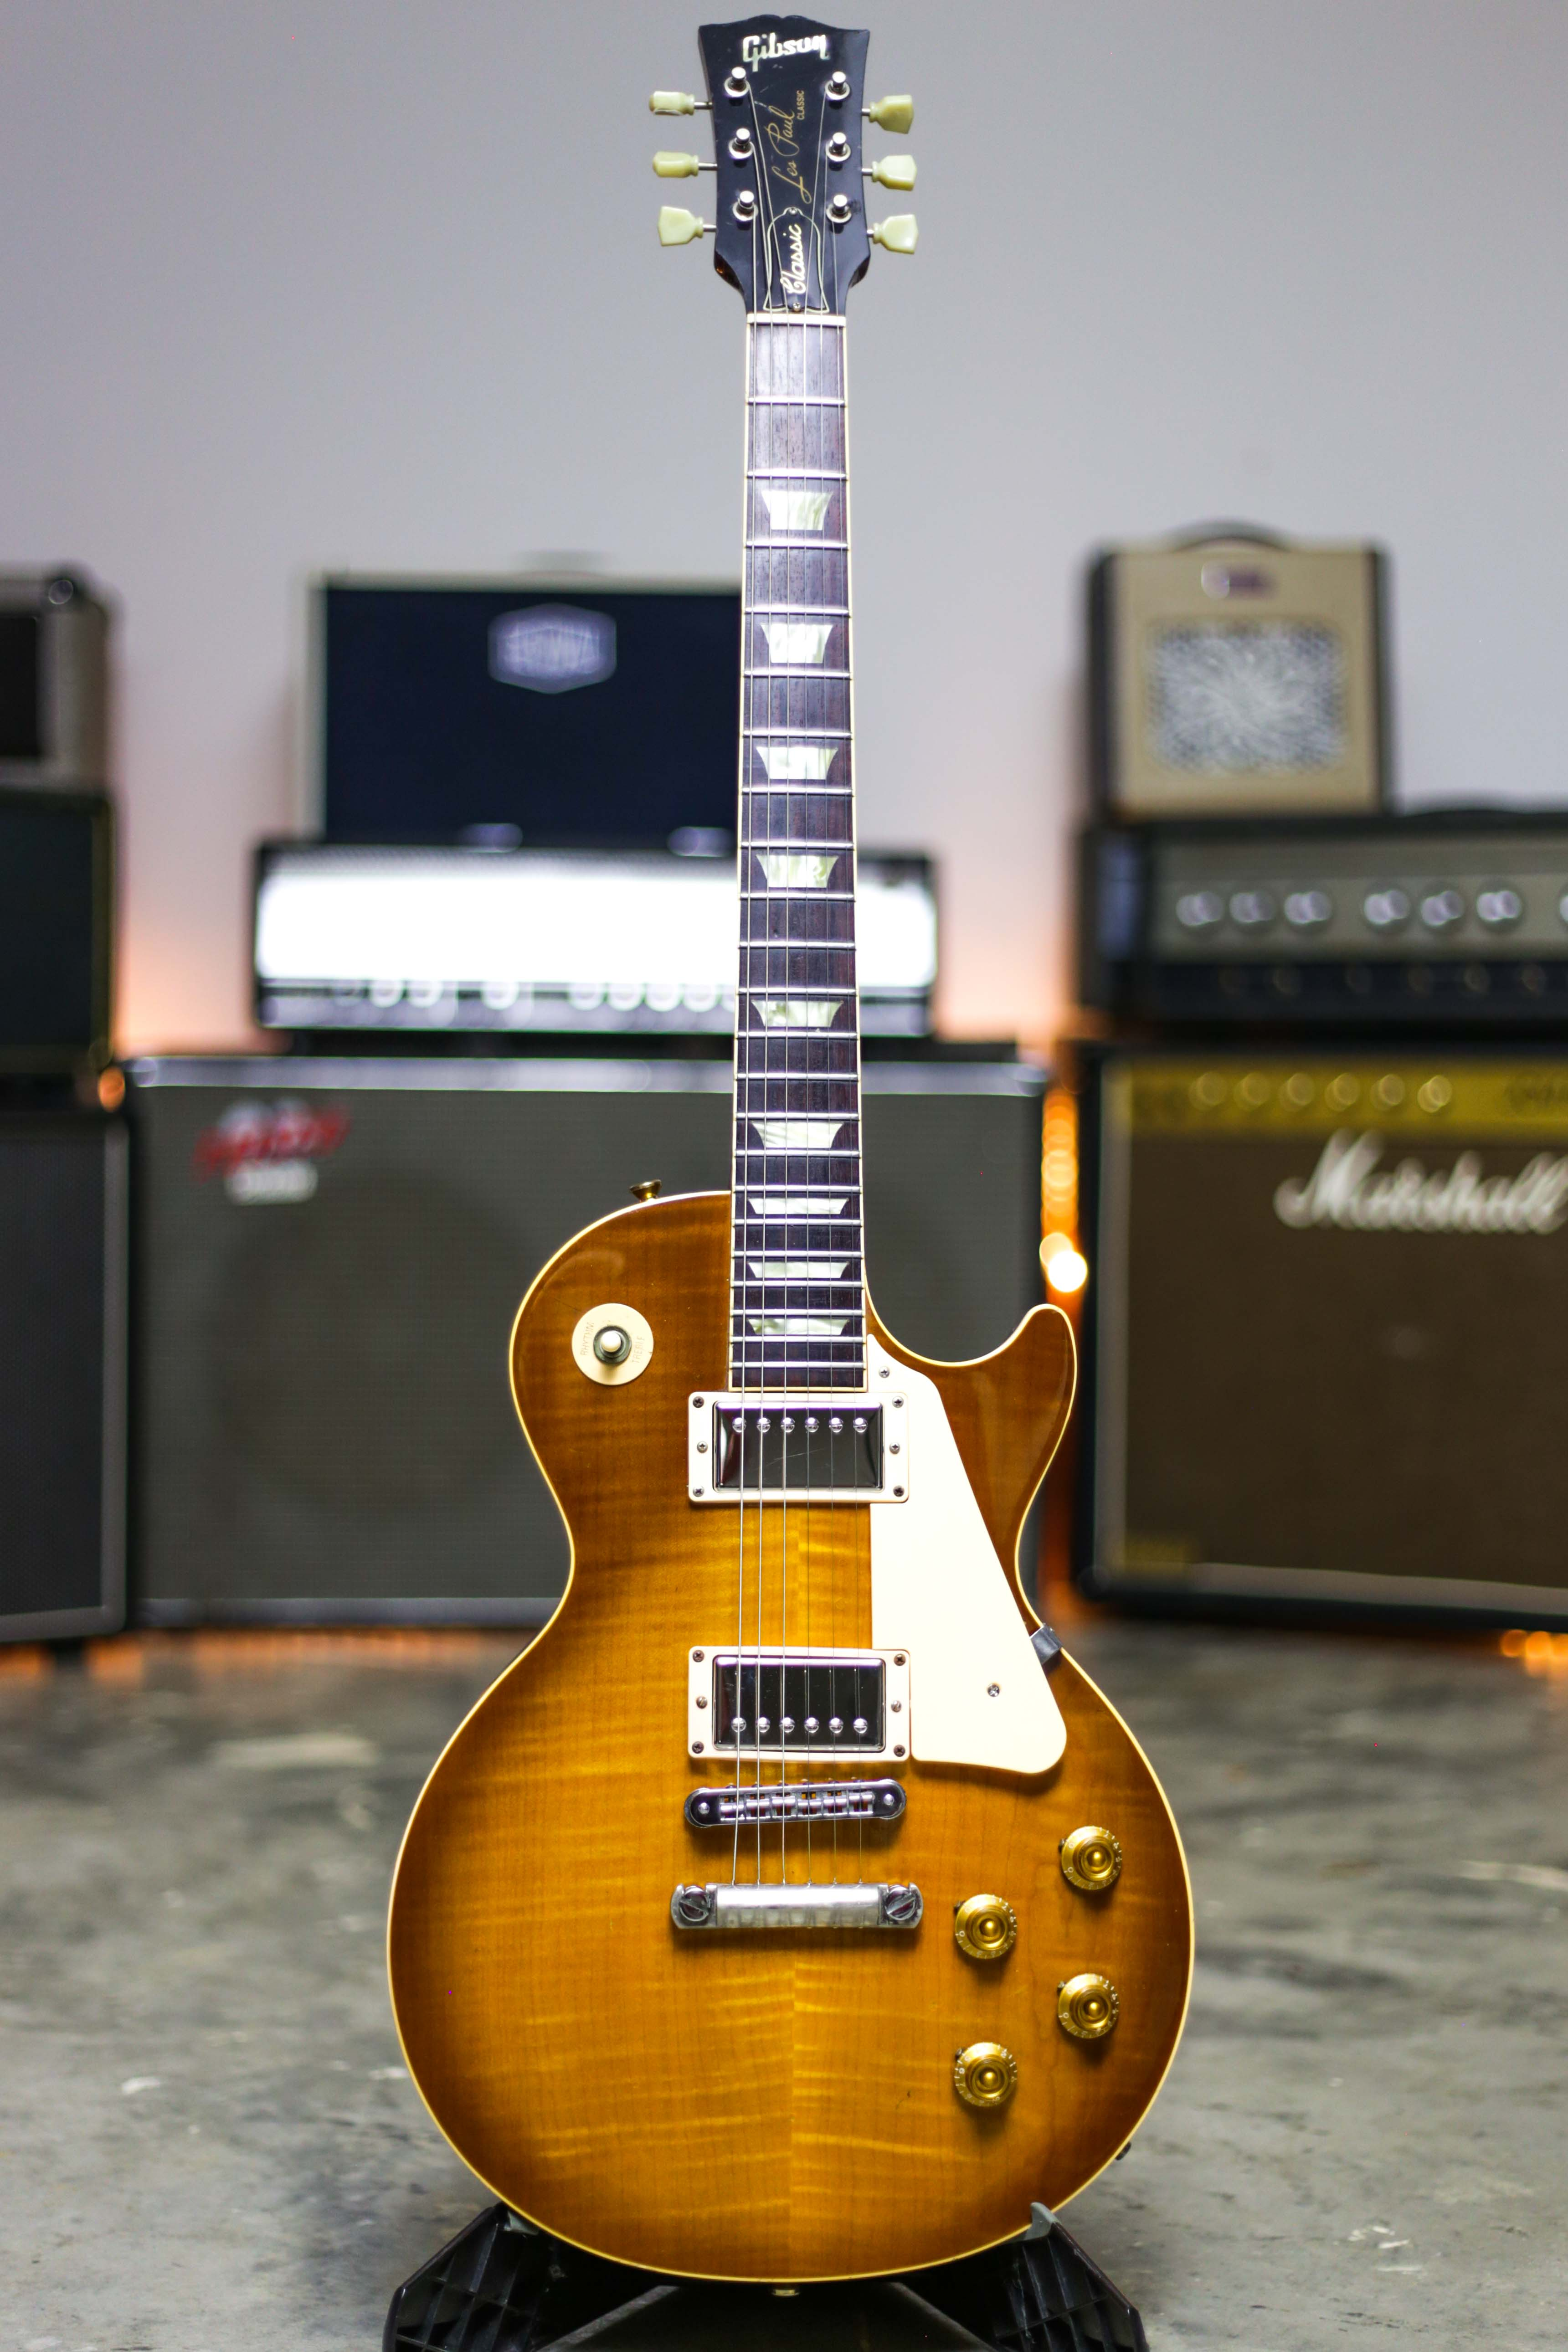 1997 gibson les paul classic honeyburst plus top grlc2049 ebay. Black Bedroom Furniture Sets. Home Design Ideas